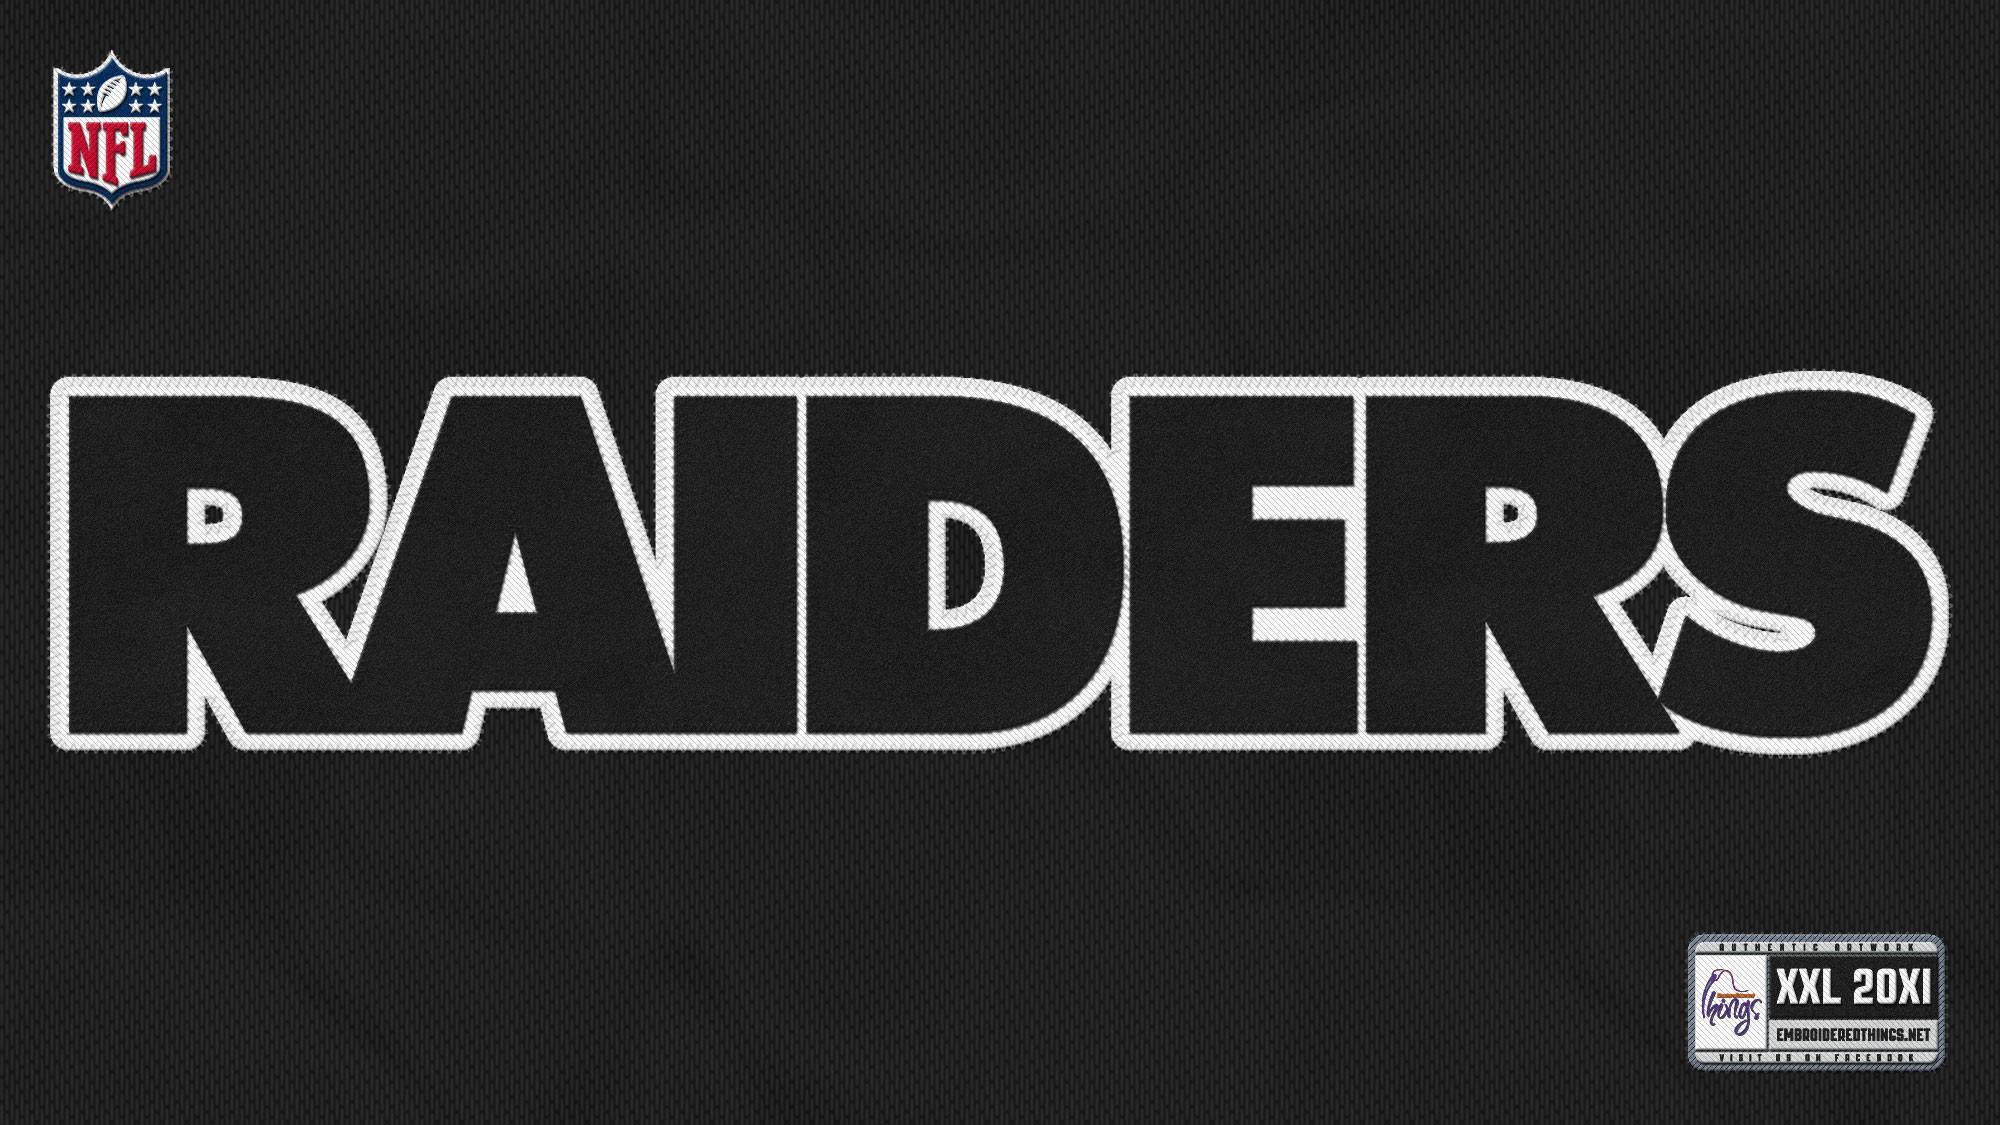 2000x1125 out! our new Oakland Raiders wallpaper | Oakland Raiders wallpapers .